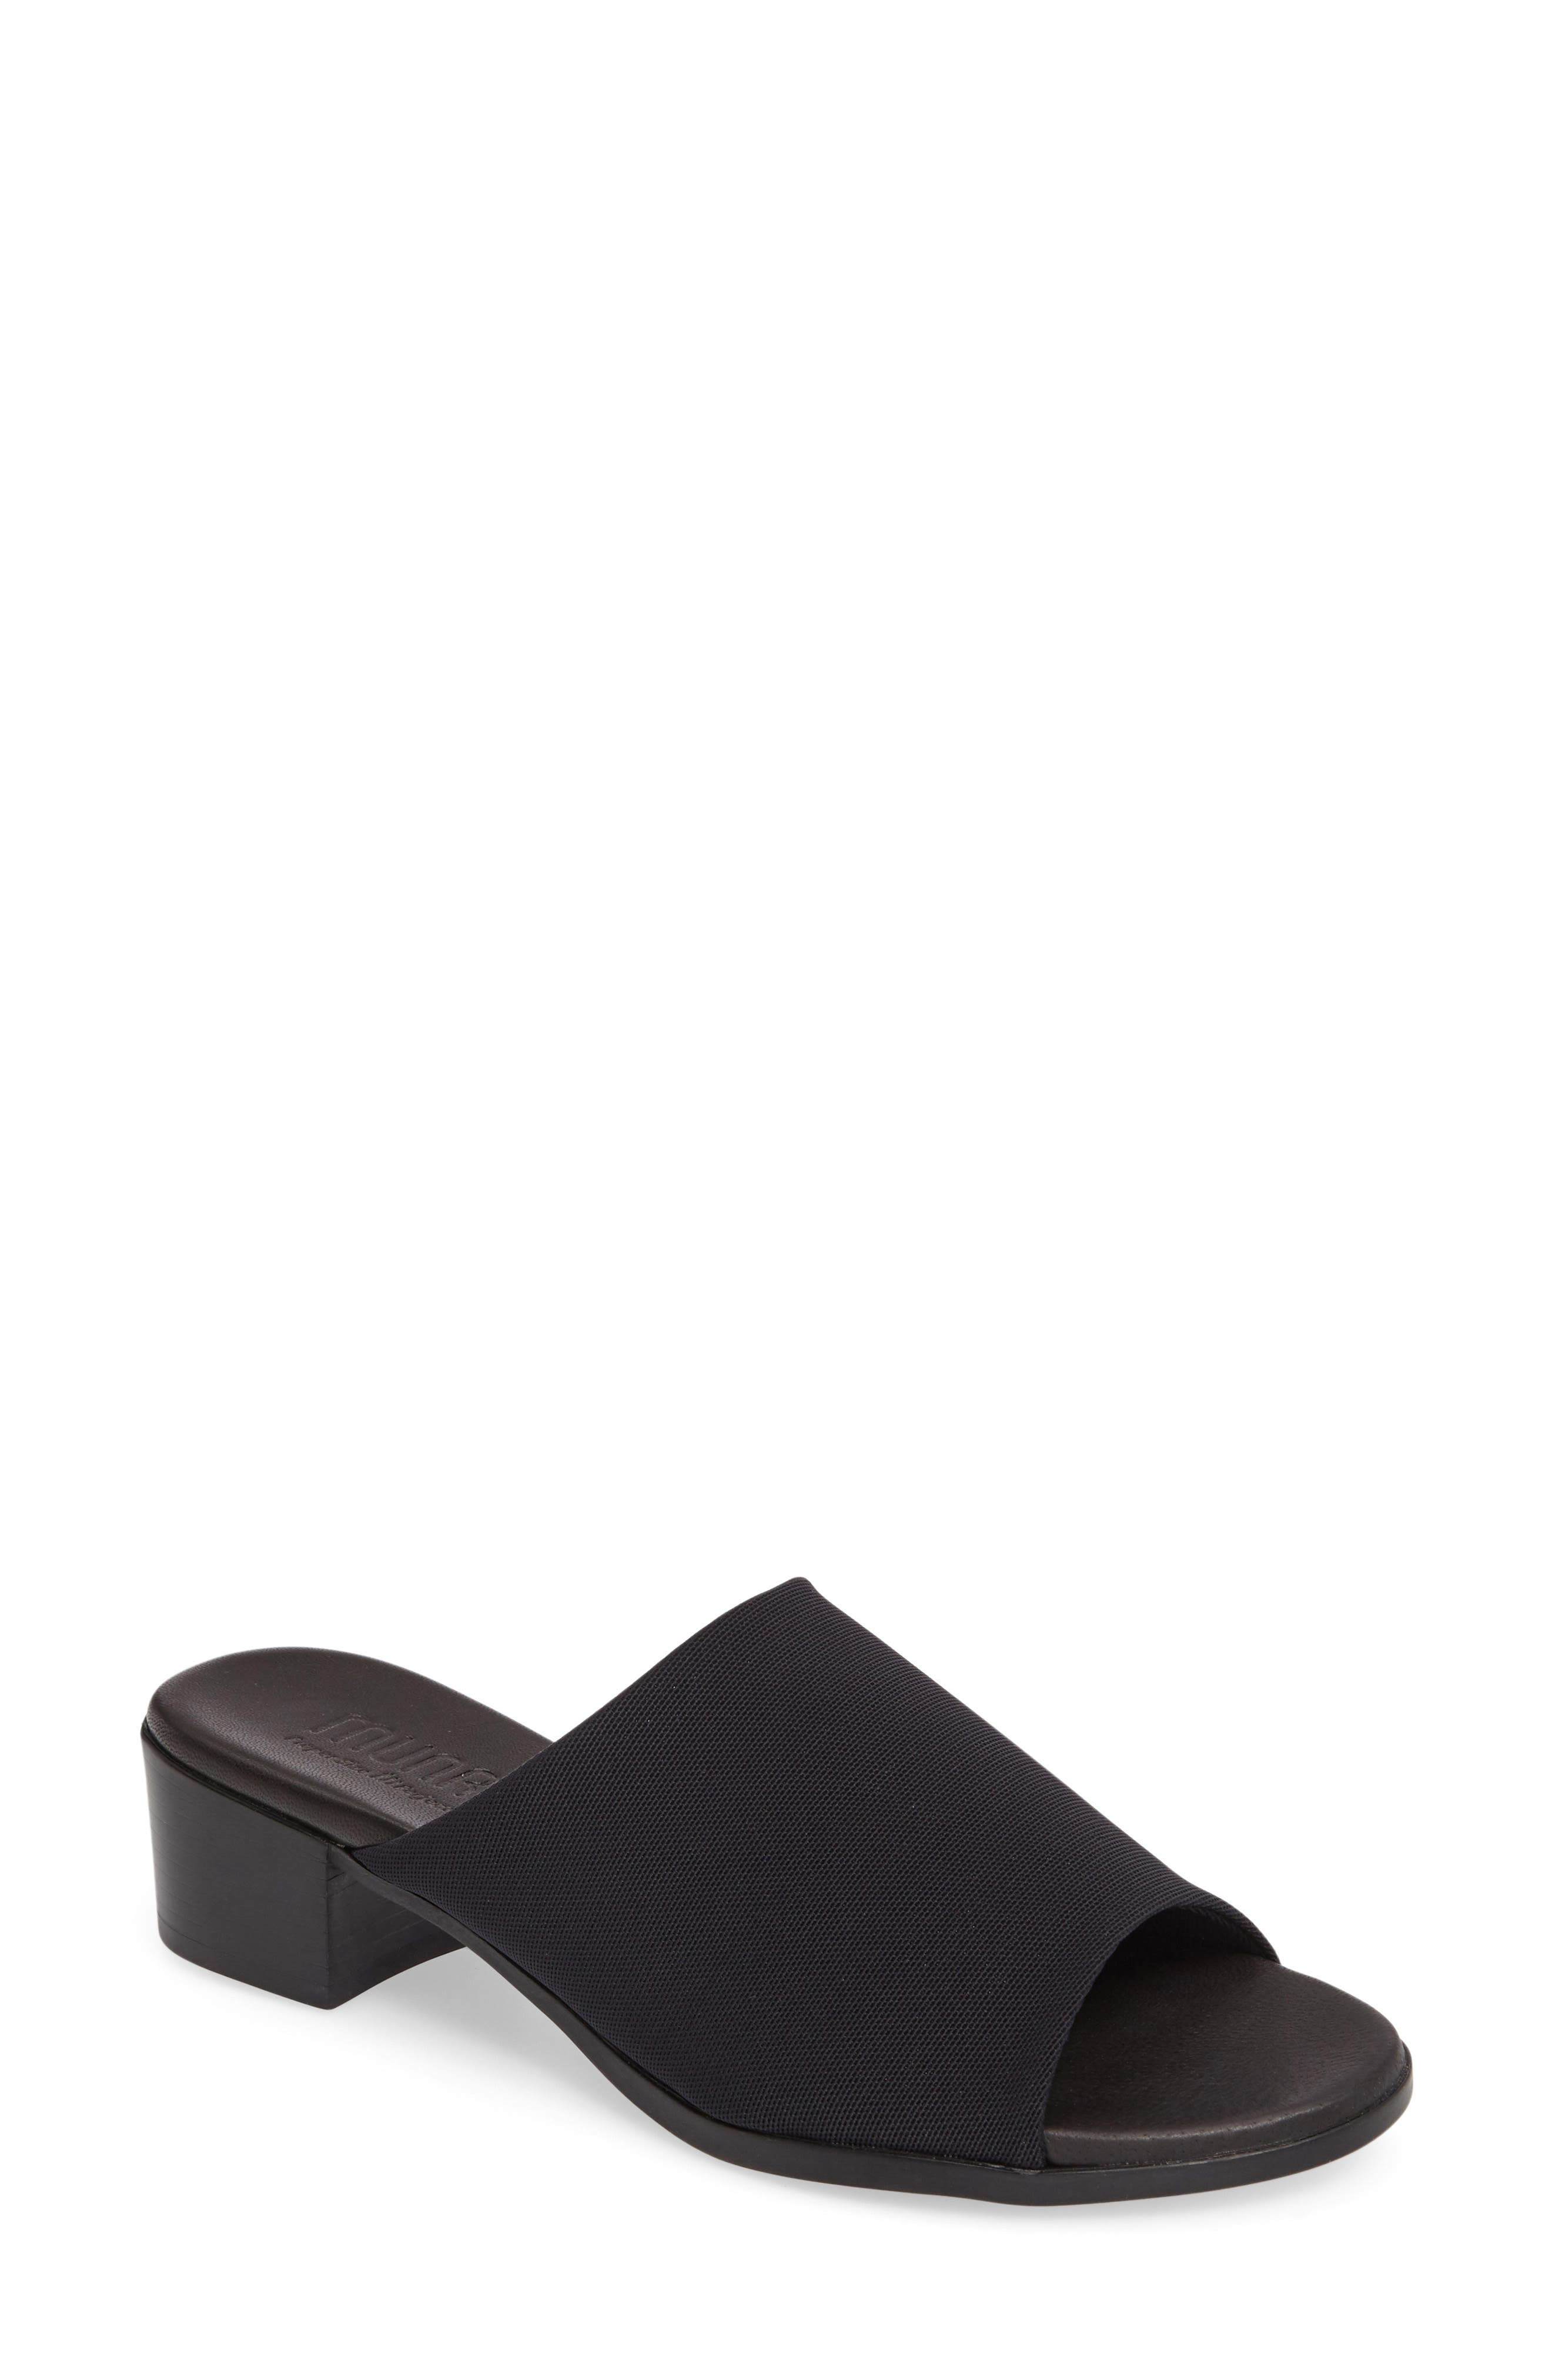 Beth Slide Sandal,                             Main thumbnail 1, color,                             Black Fabric